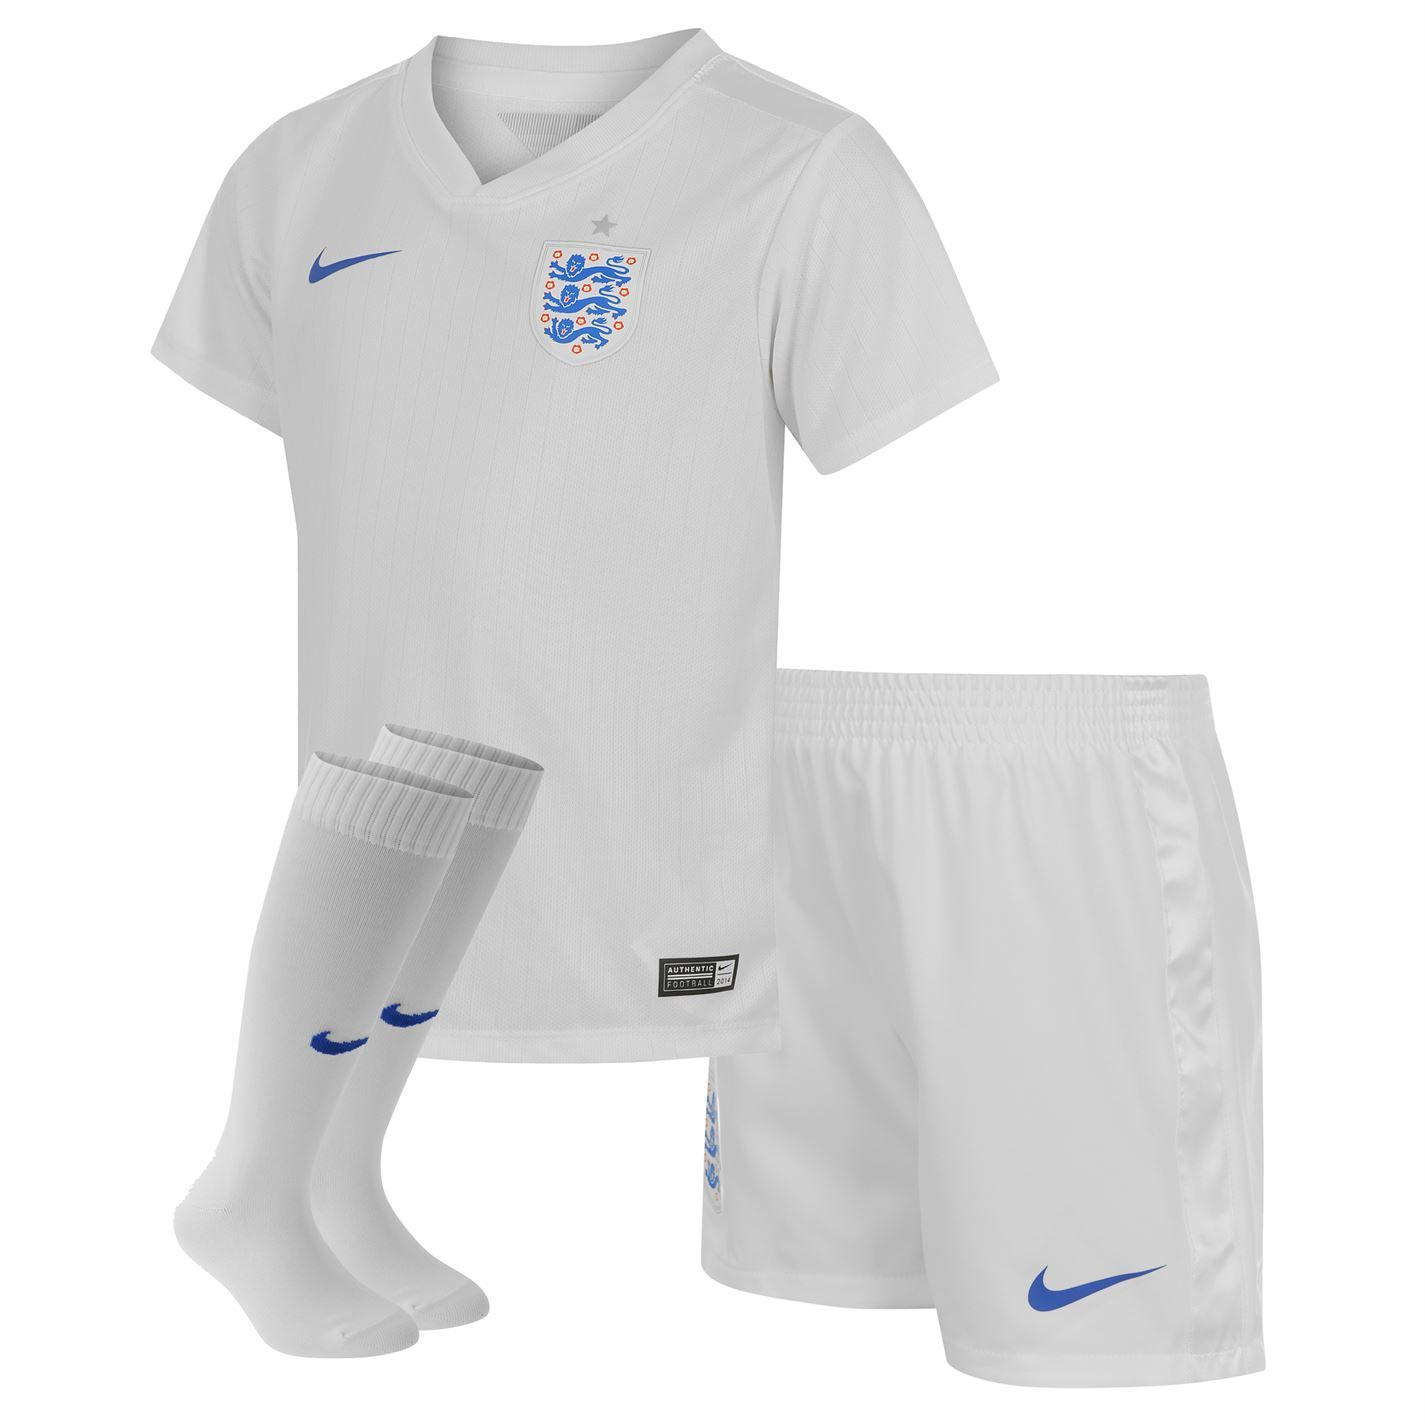 Cool England Kit World Cup 2018 - c9d97b079a3ffd9129977598a725fa62  Snapshot_68647 .jpg